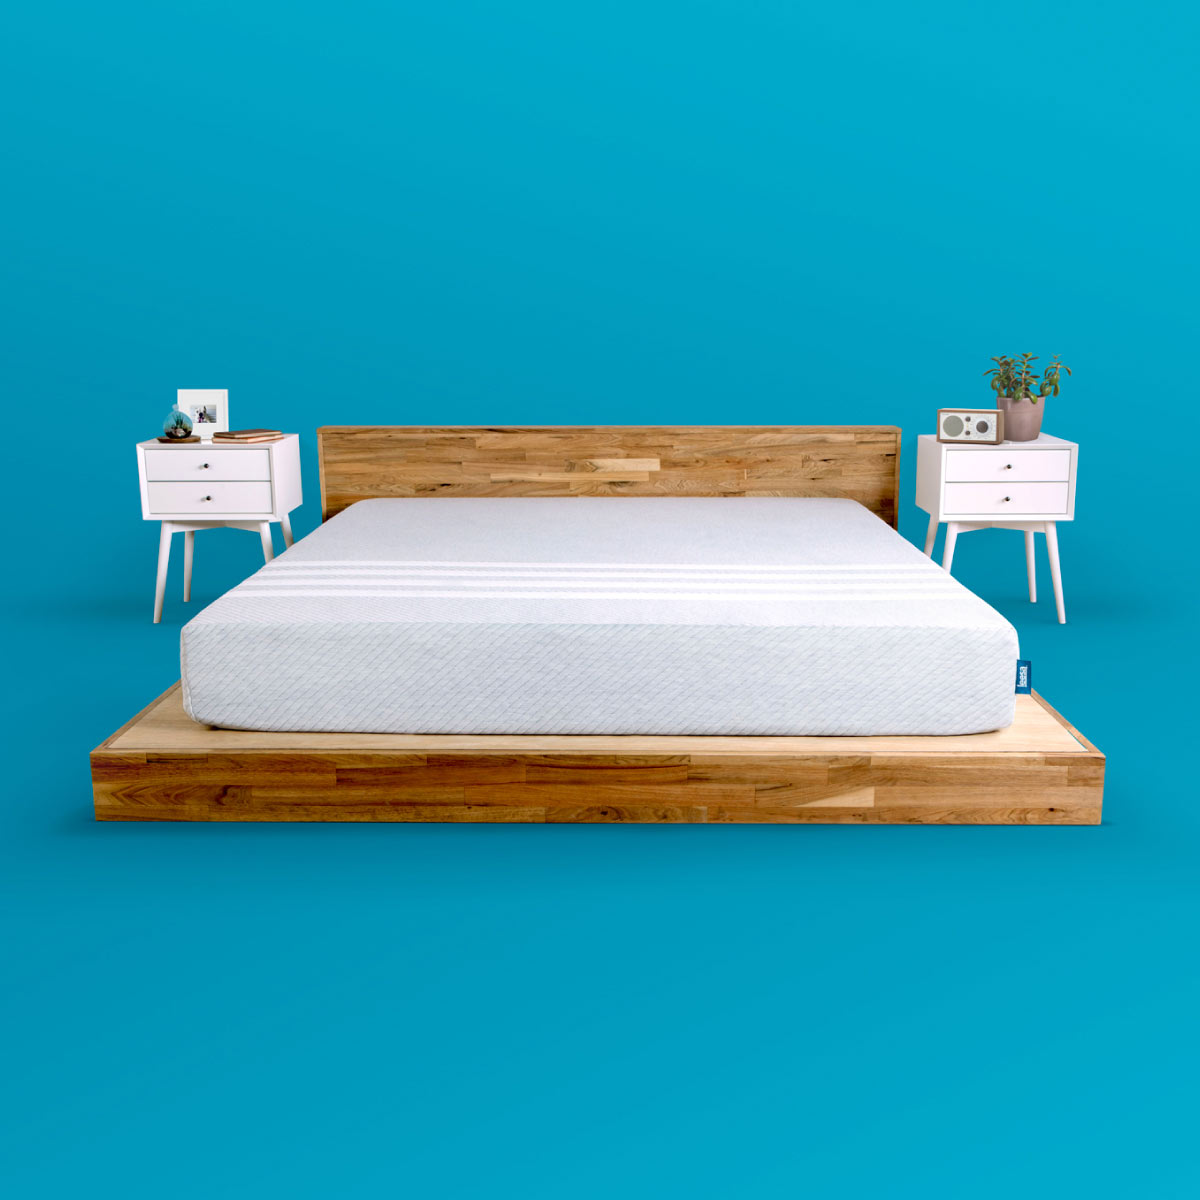 Shop The Leesa Mattress Over 12 000 5 Star Reviews